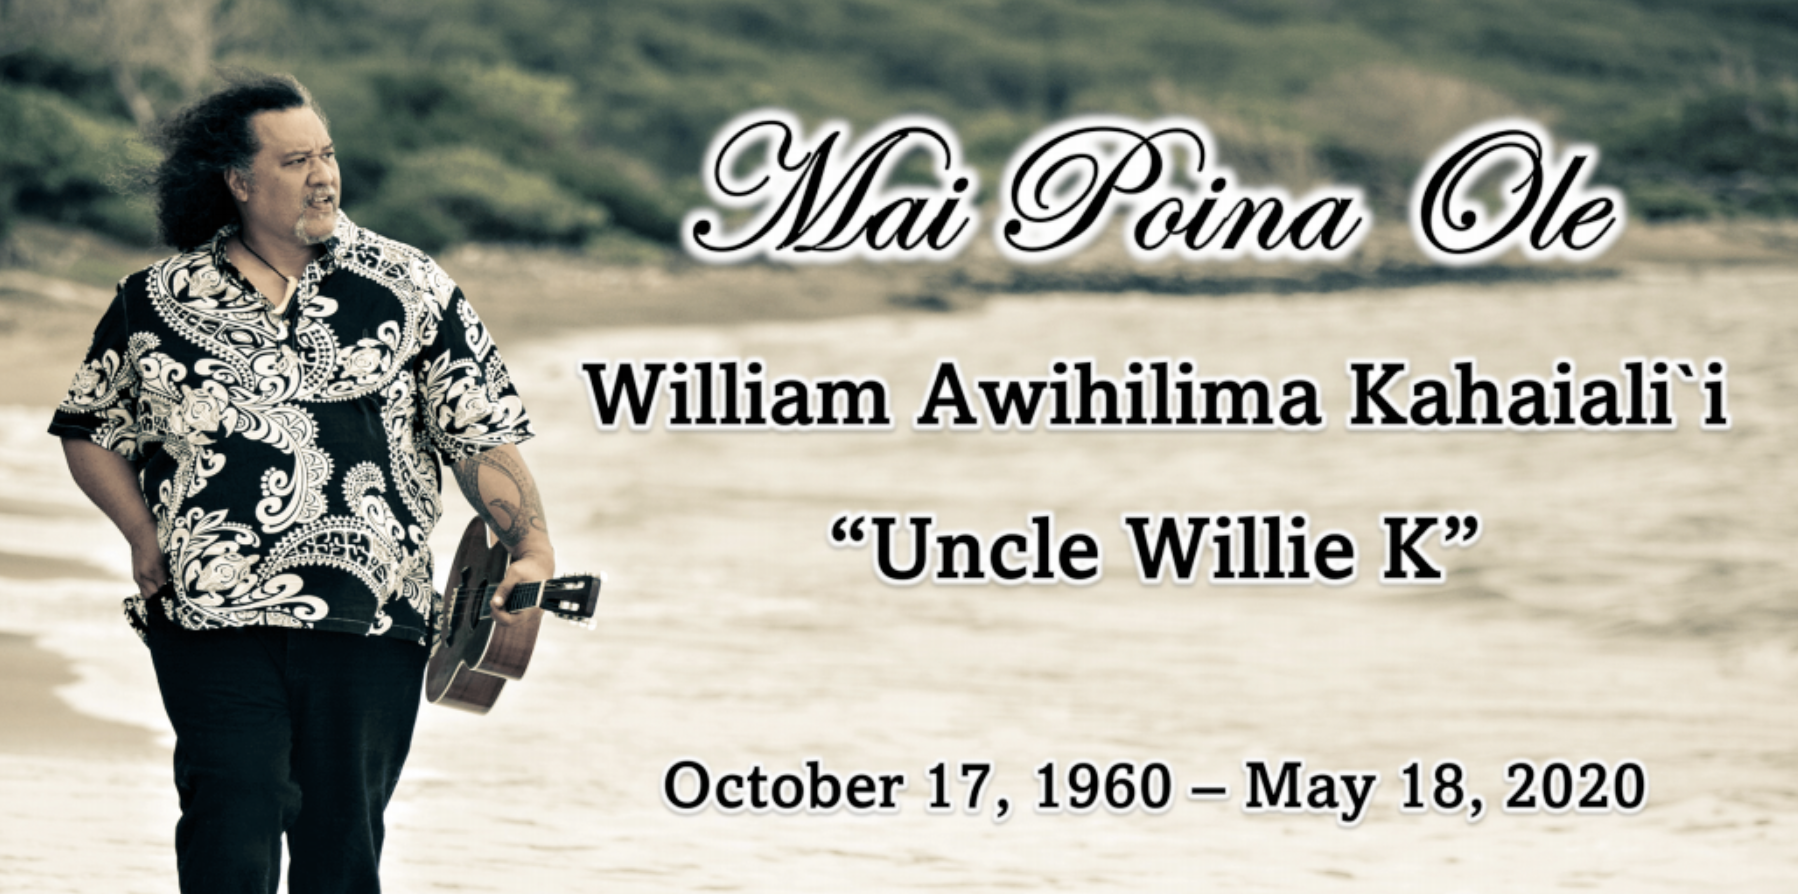 Celebration of Life Planned for the Late Willie K